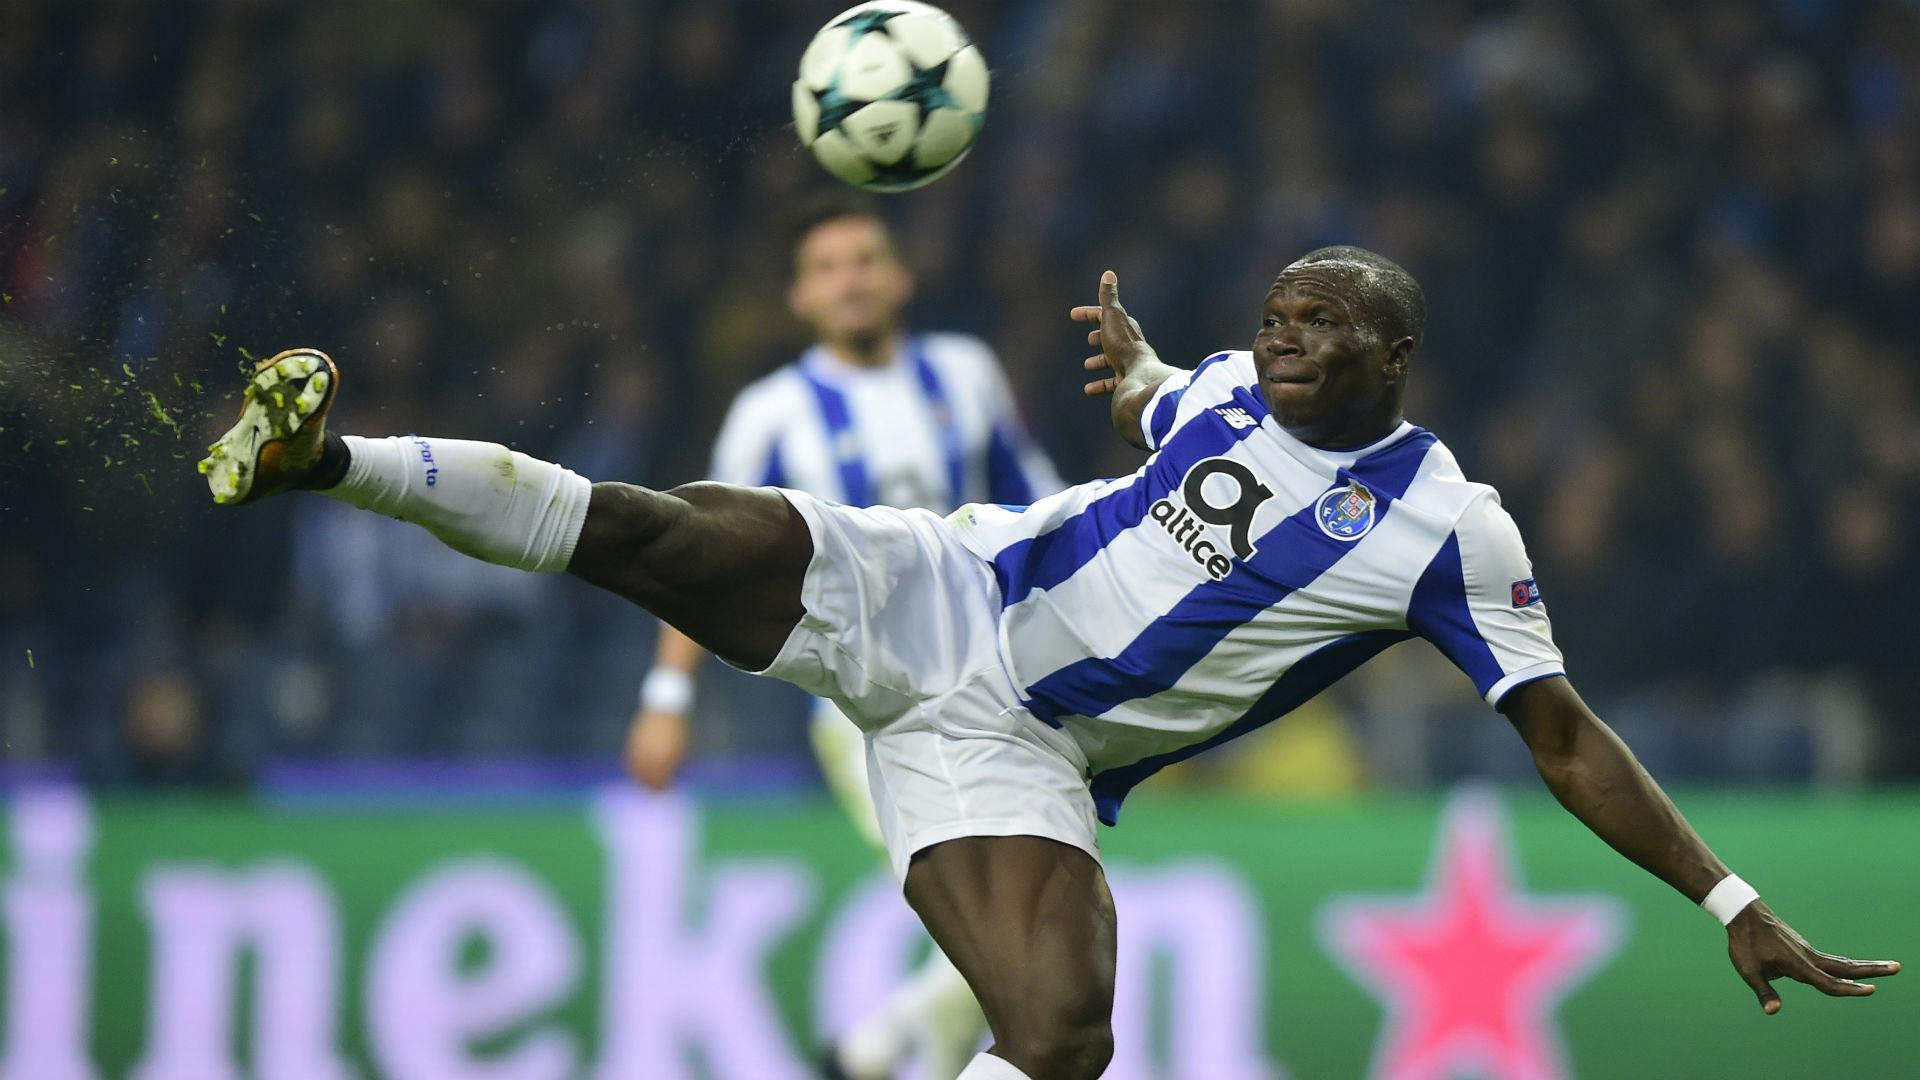 Presence of Cameroon star Vincent Aboubakar attracted Marius ...